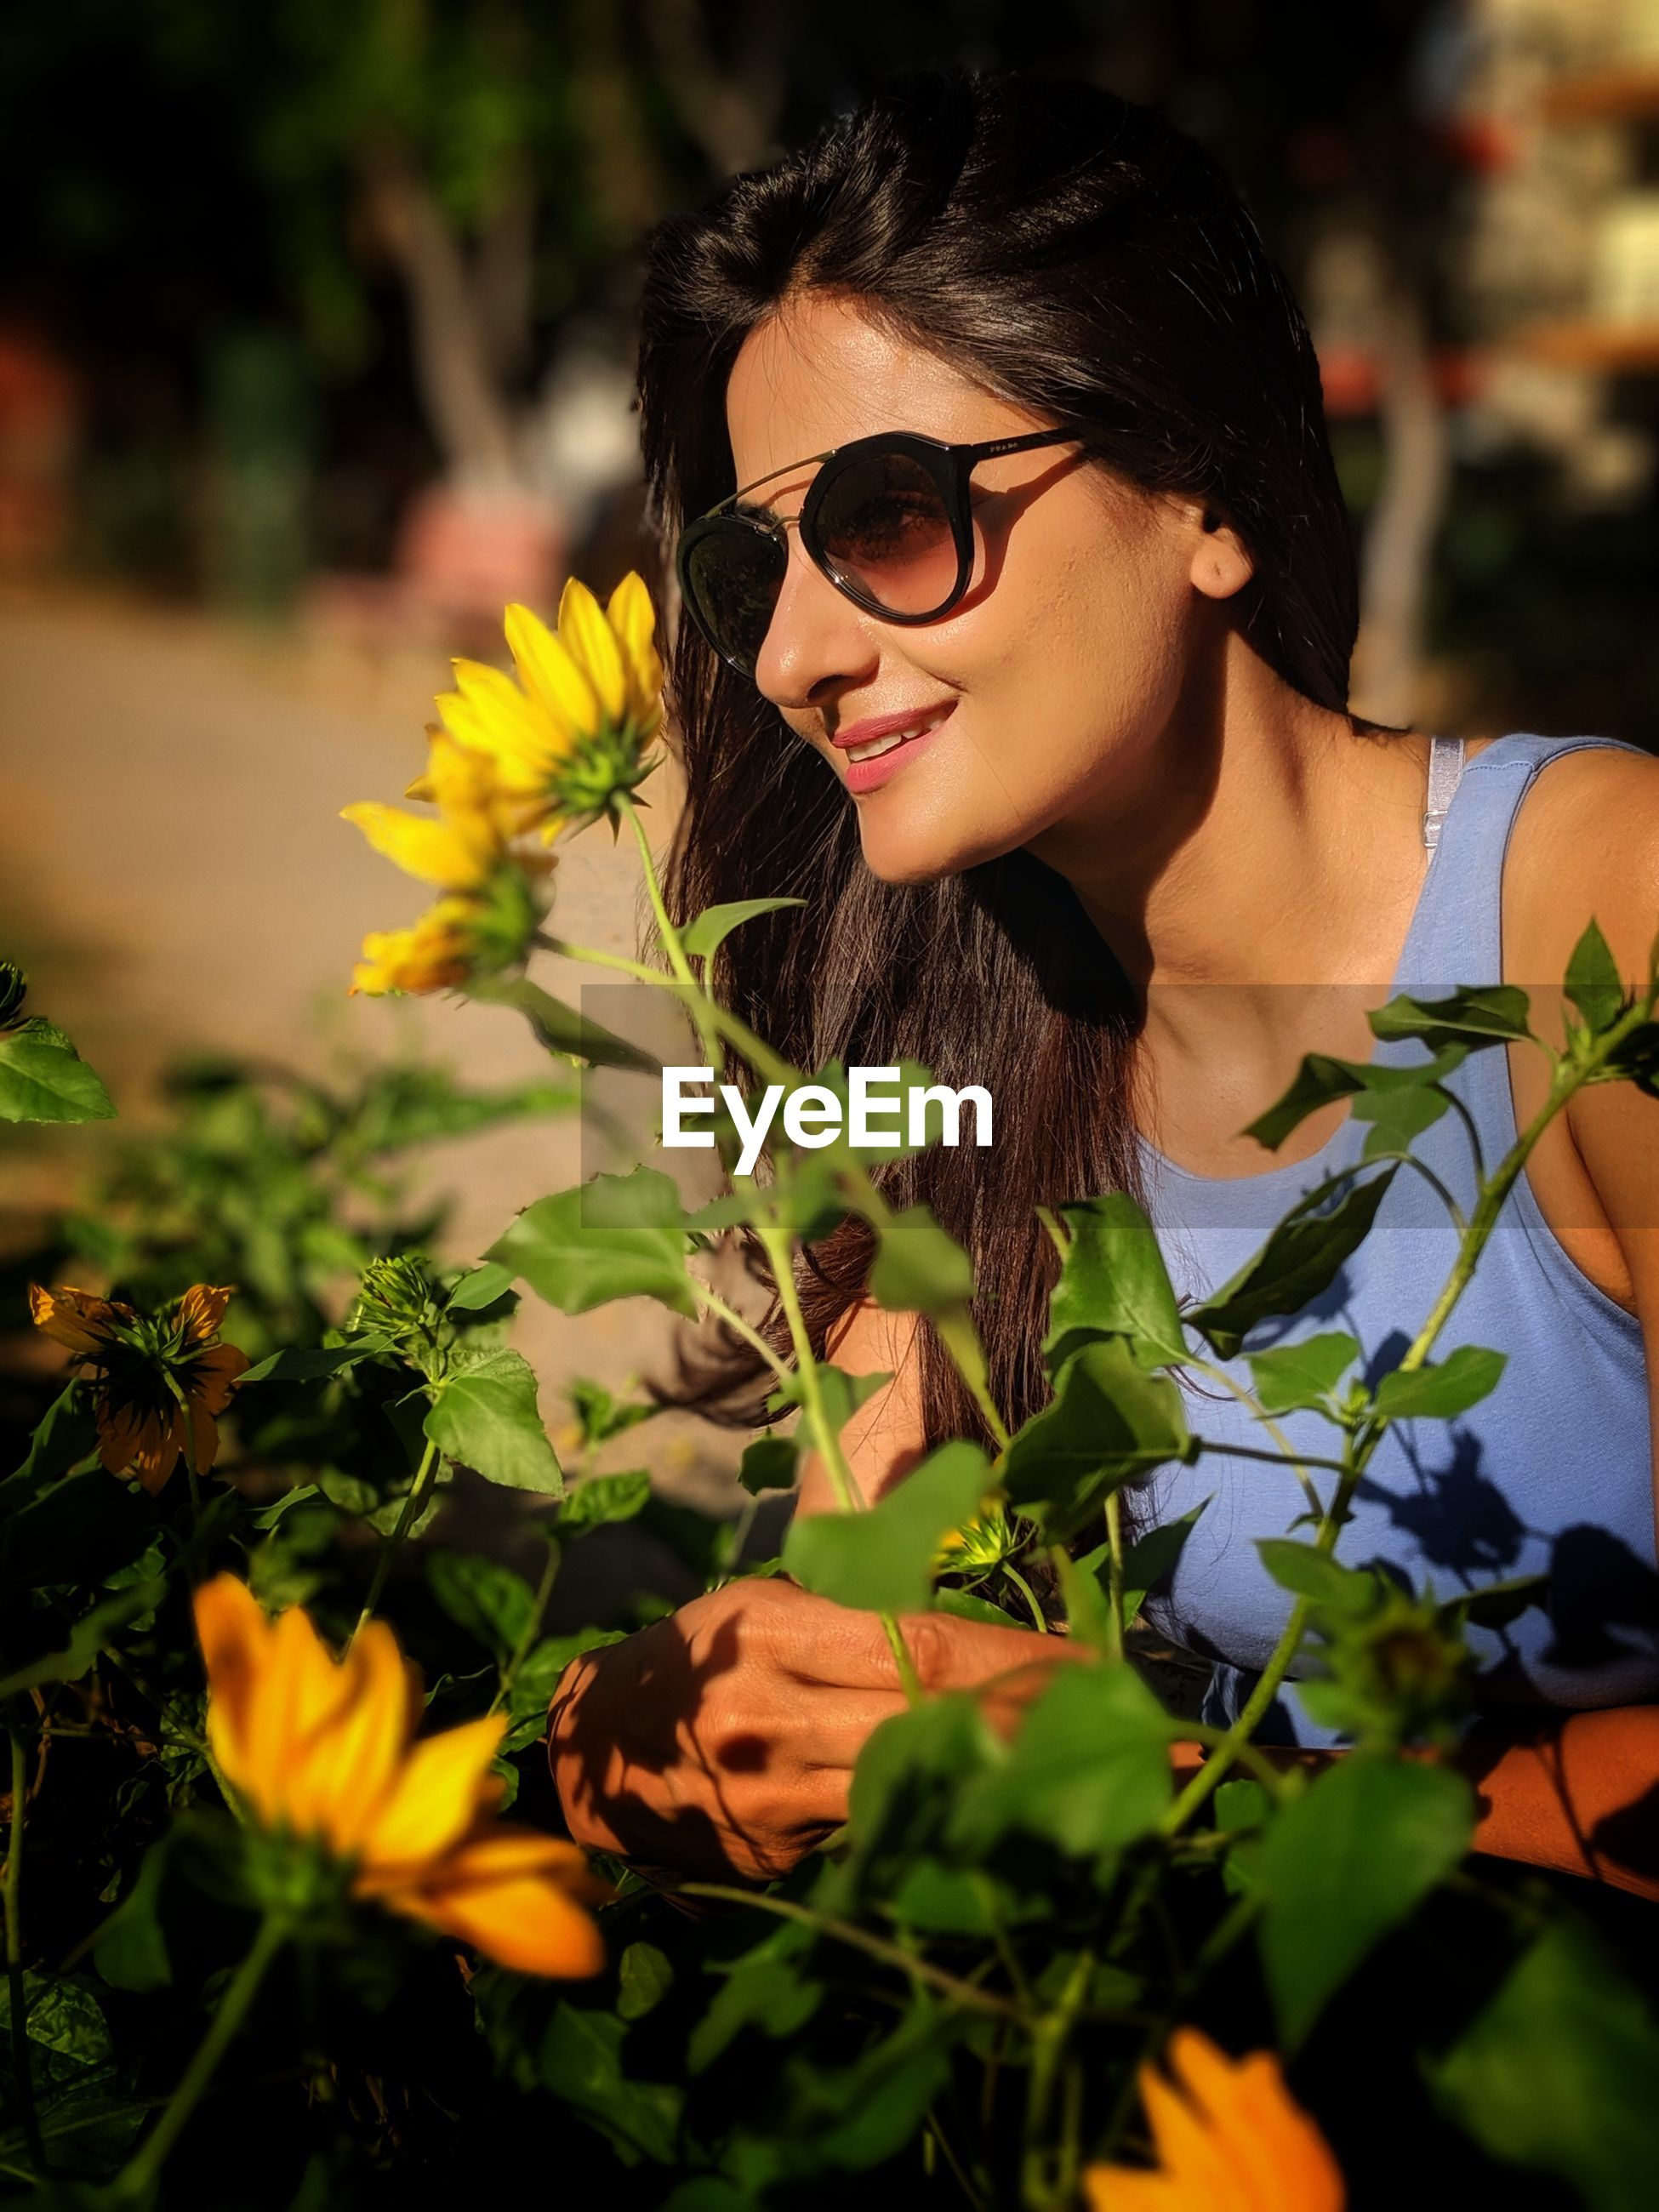 Smiling young woman wearing sunglasses by plants